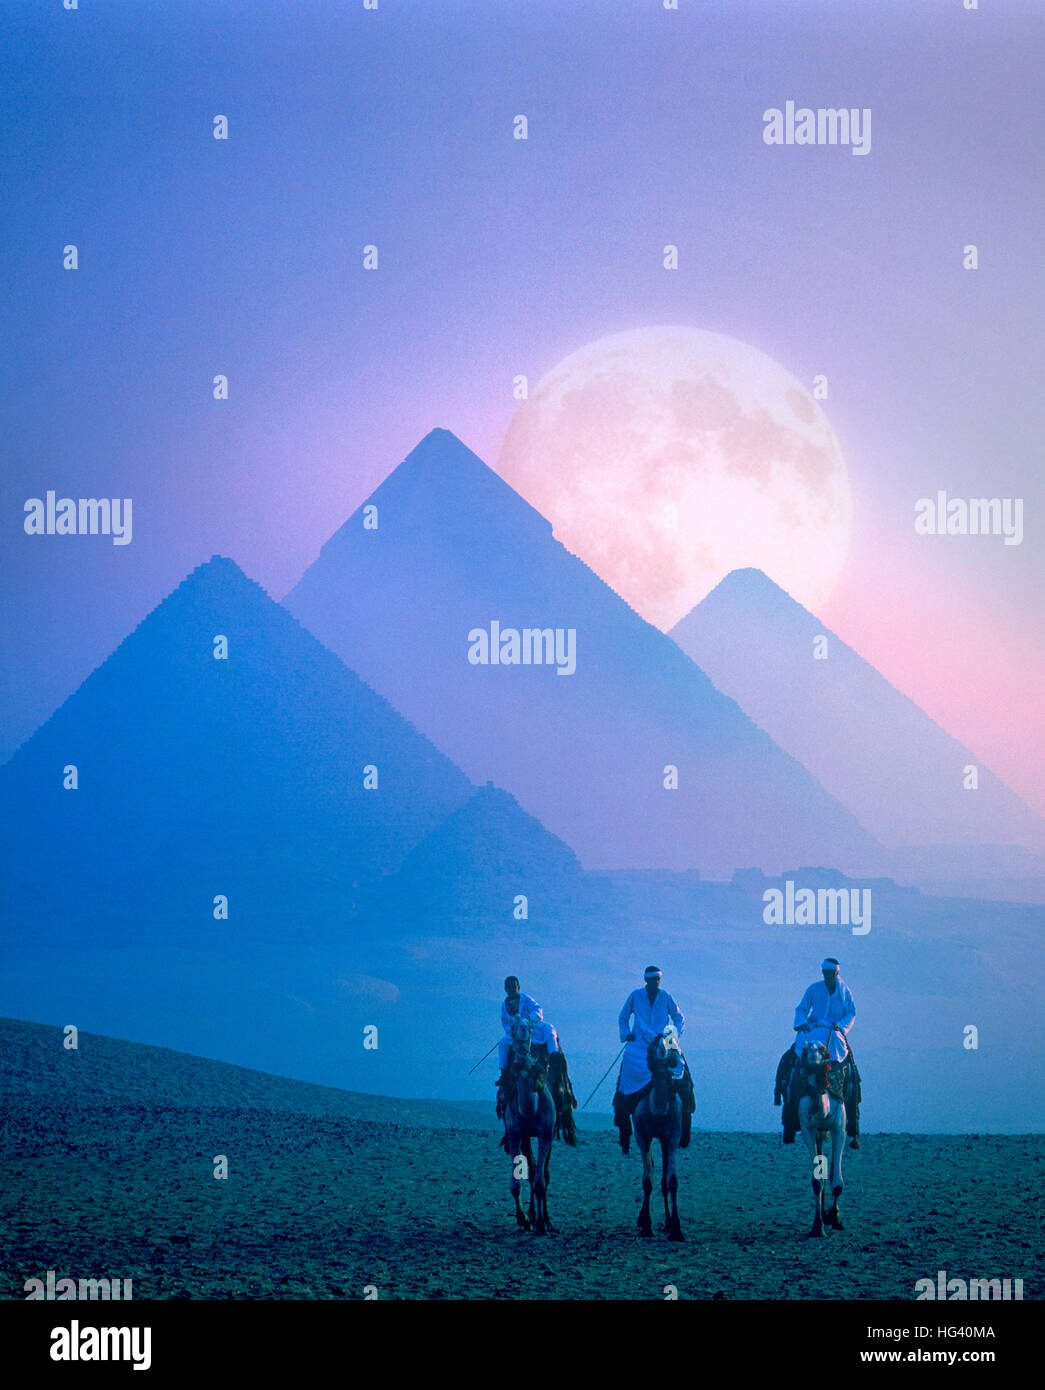 Full moon rising behind the Pyramids at dusk, Giza, Cairo, Egypt - Stock Image